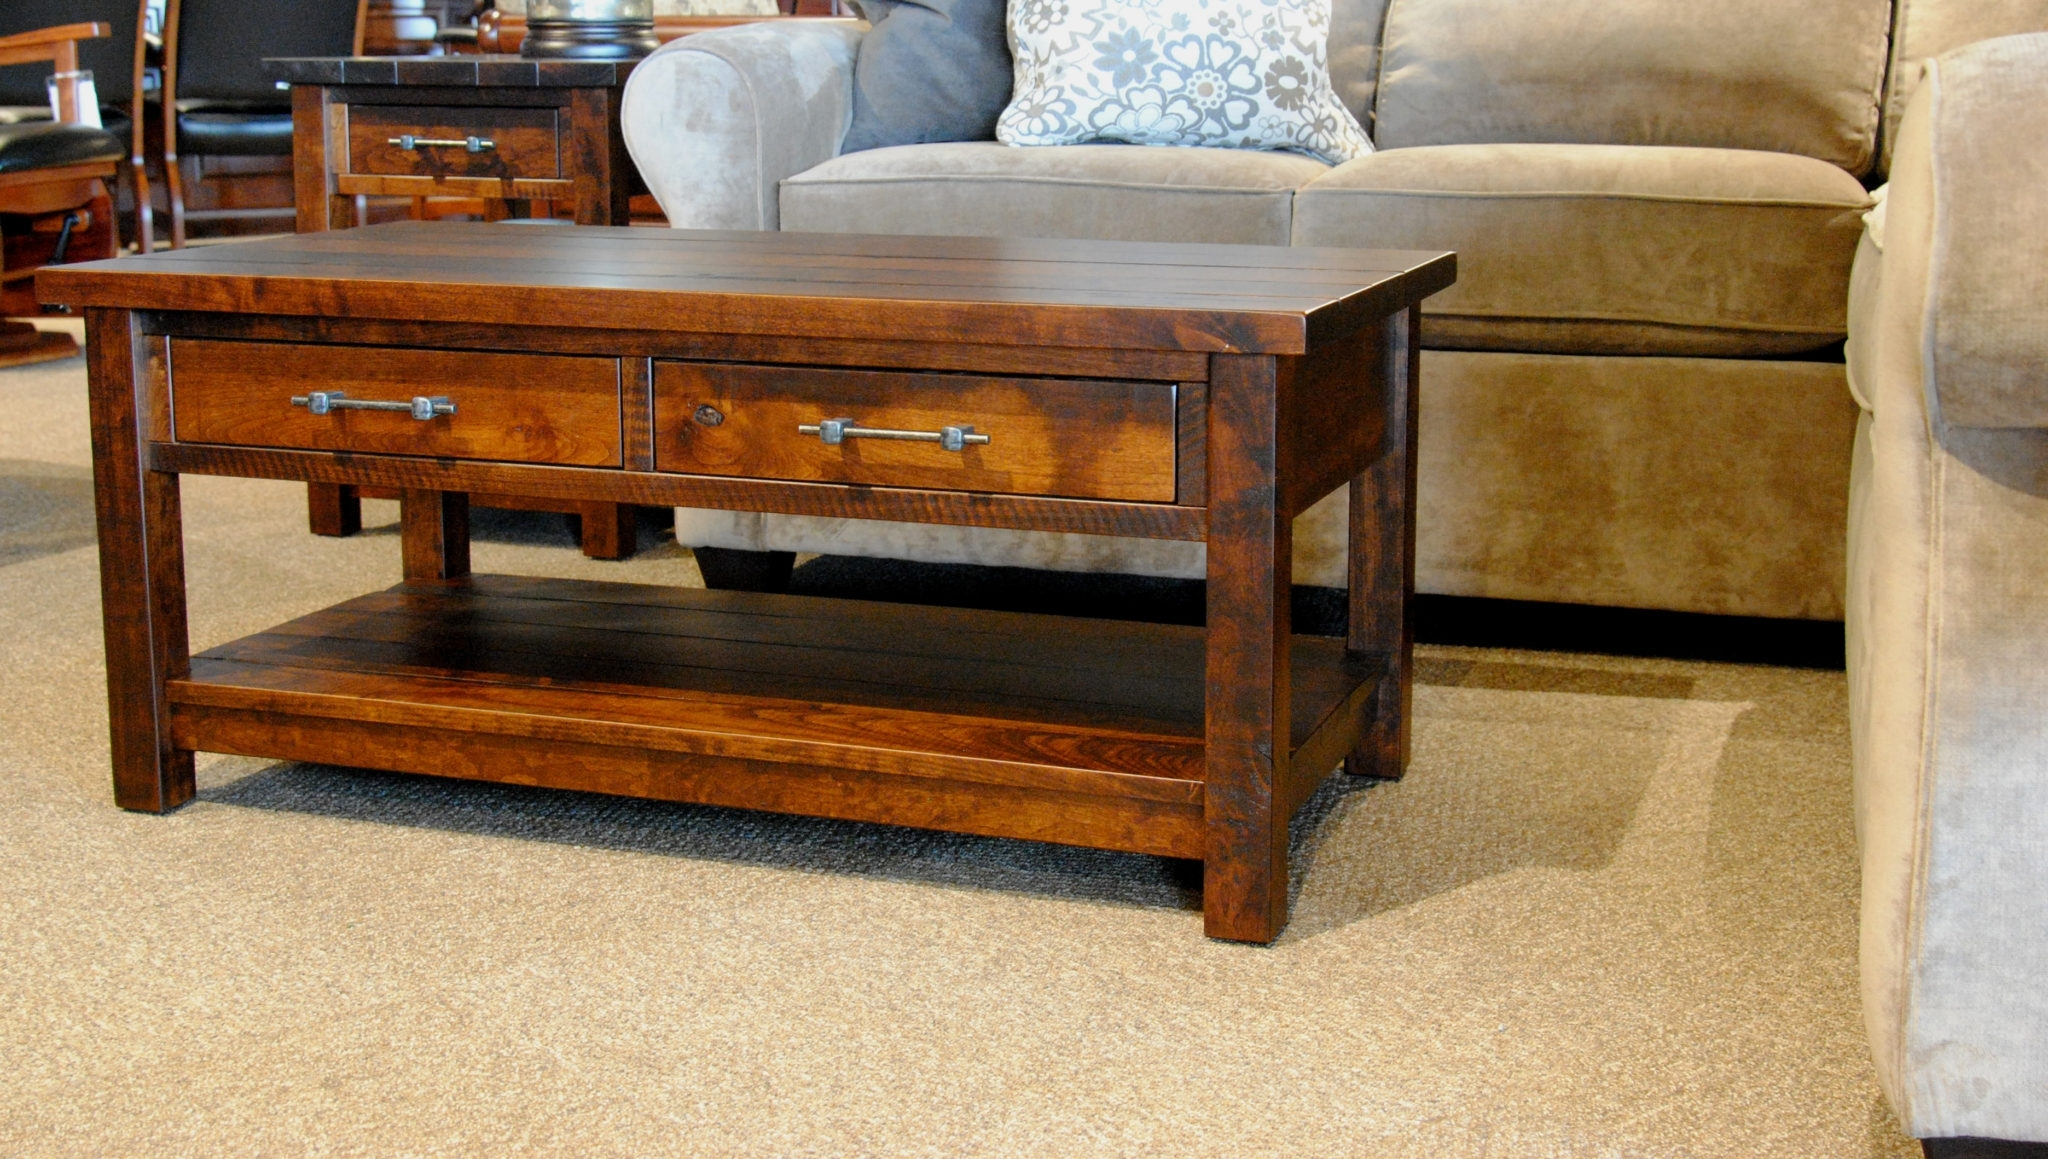 Timber Mill Coffee Table - Gish's Amish Legacies intended for Mill Coffee Tables (Image 27 of 30)